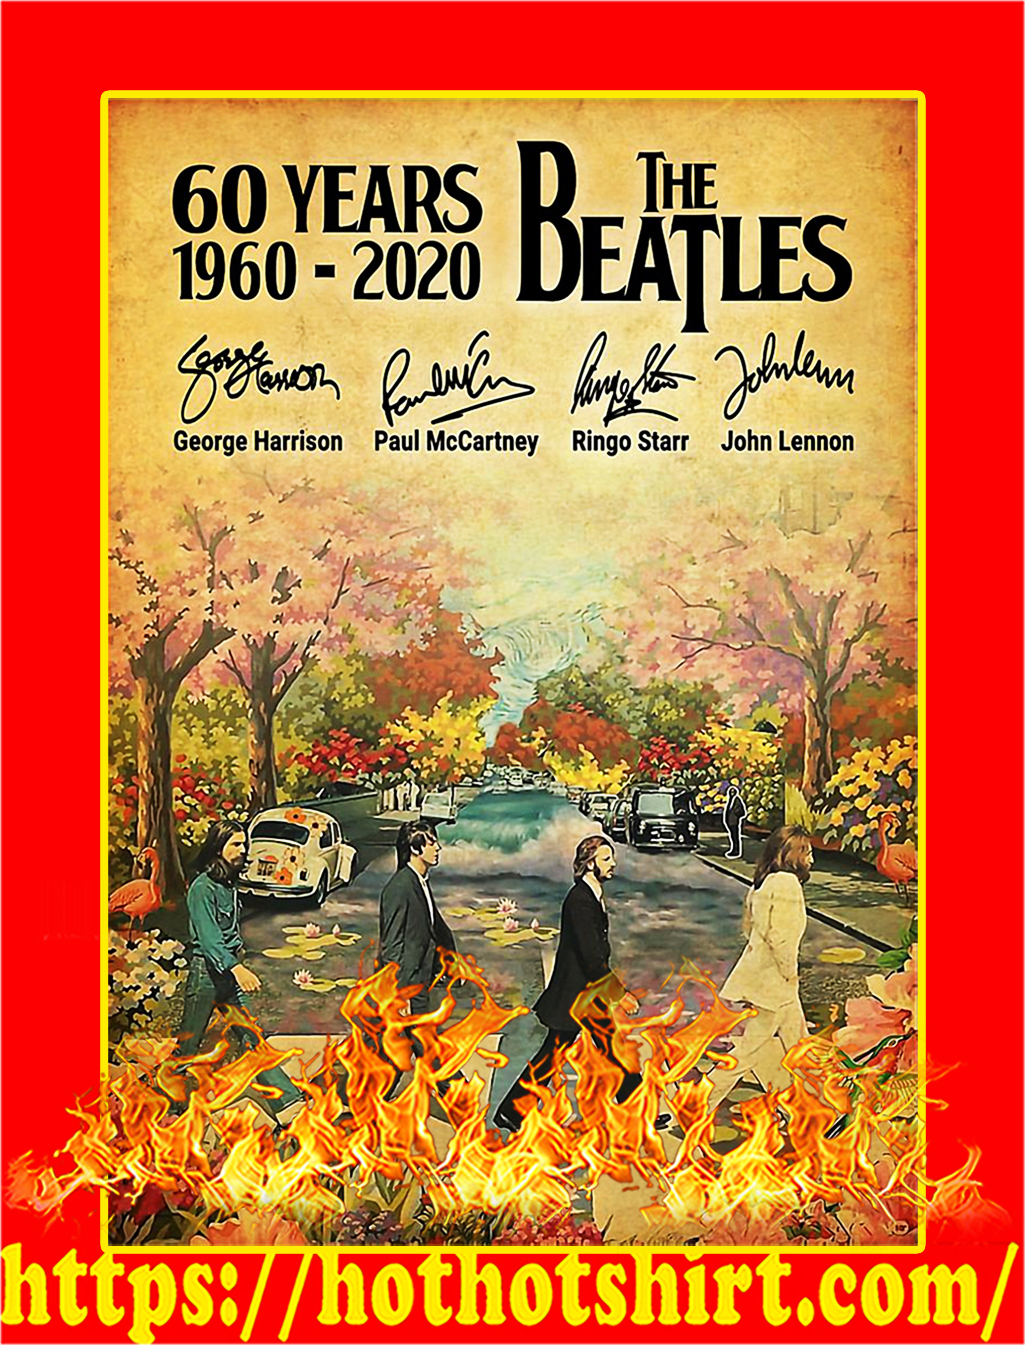 60 Years The Beatles Signature Poster - A2